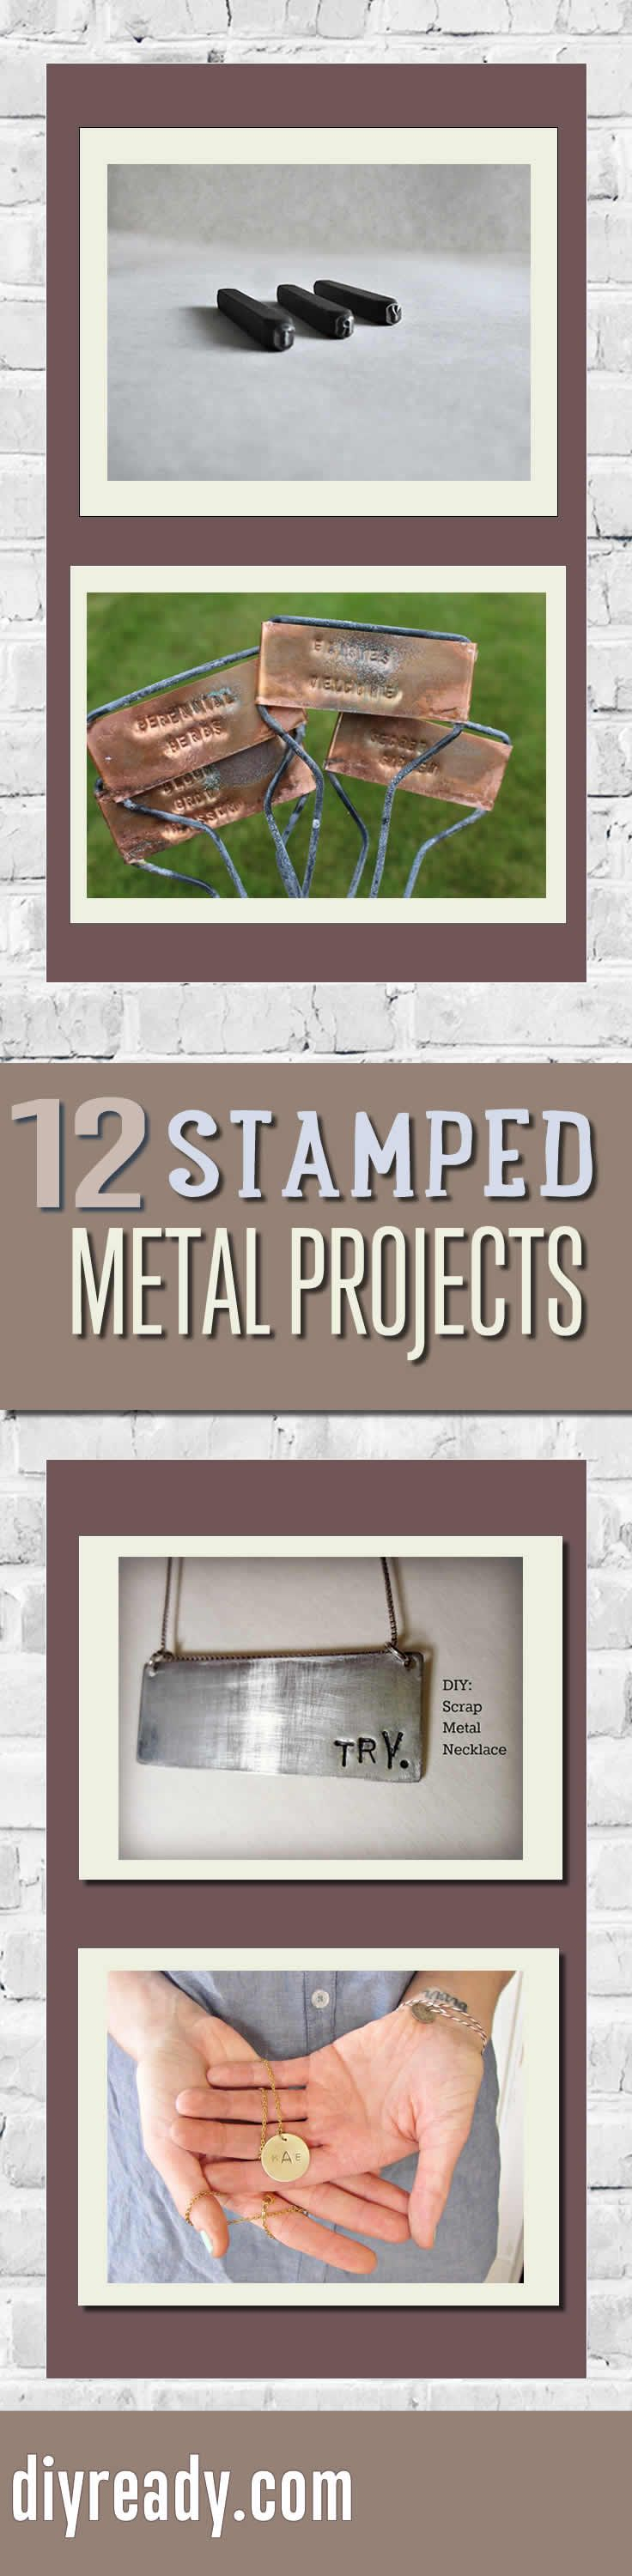 Metal Stamping DIY Projects and Metal Stamped